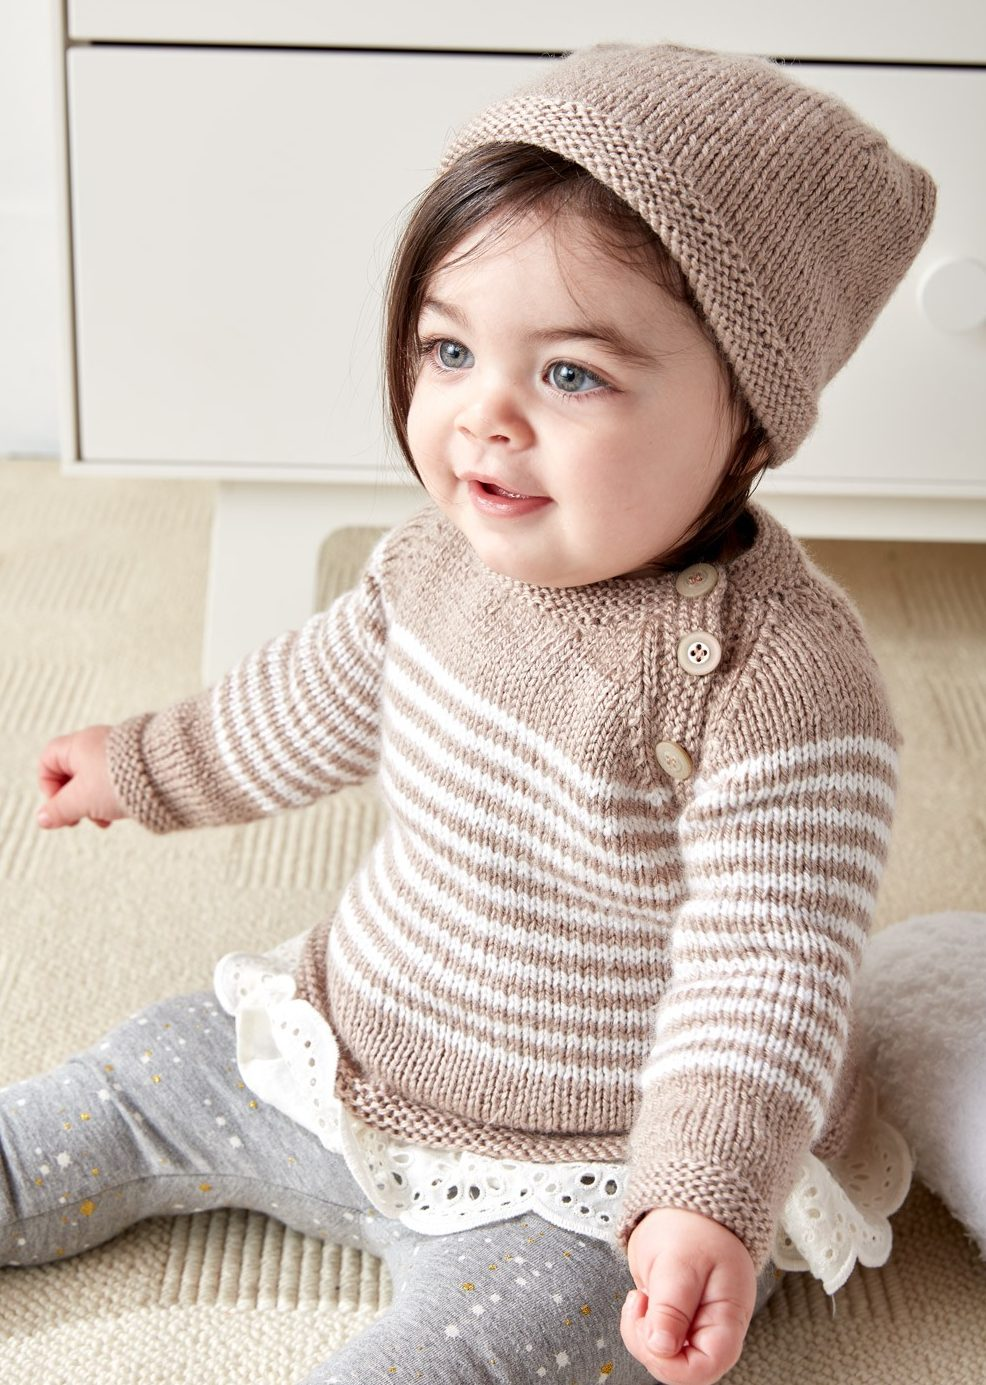 baby knitting patterns free knitting pattern for easy wee stripes baby sweater and hat bsafrfn